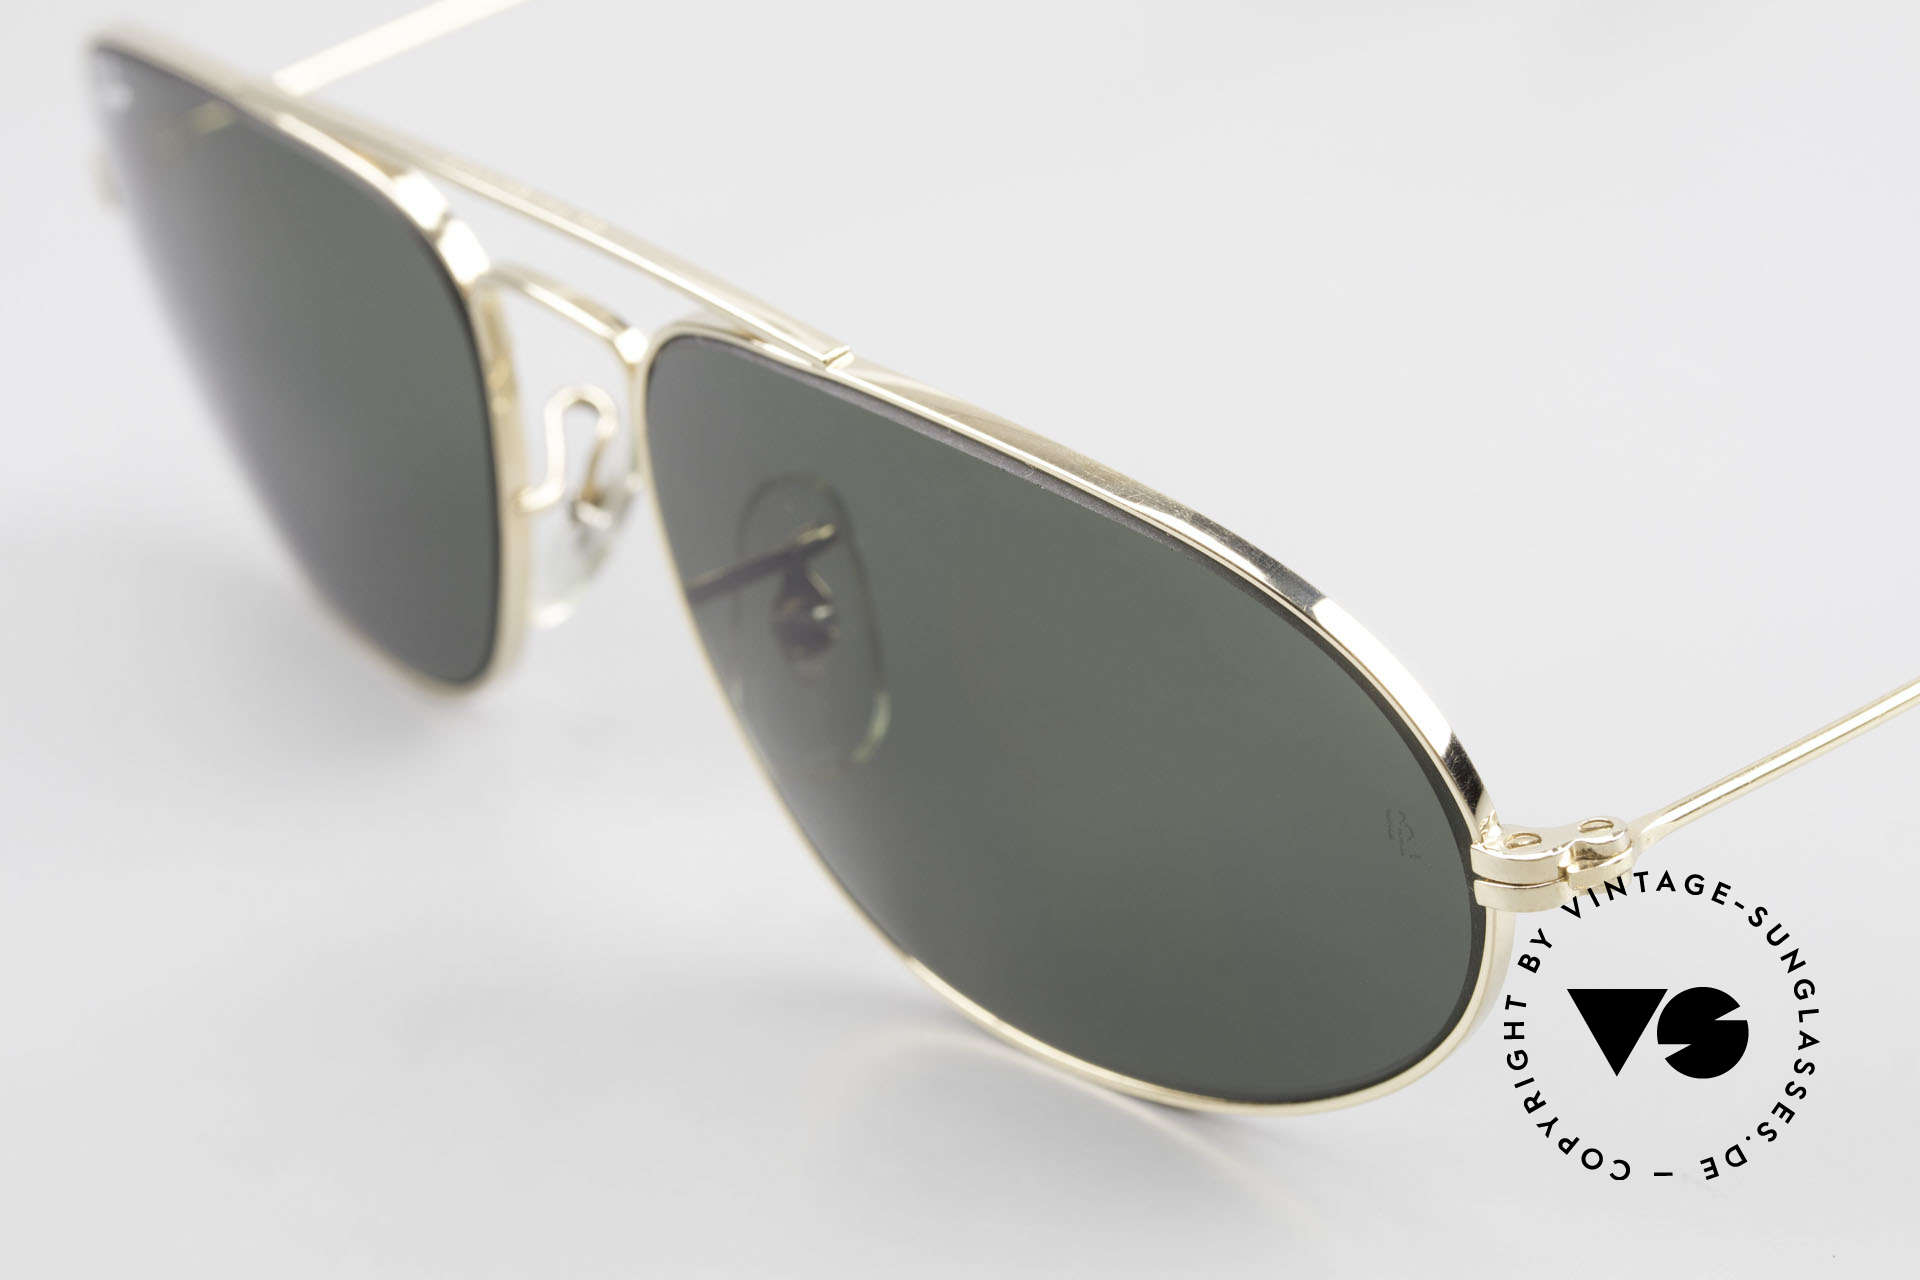 Ray Ban Fashion Metal 5 Extraordinary Aviator Shades, unworn (like all our vintage RAY-BAN shades), Made for Men